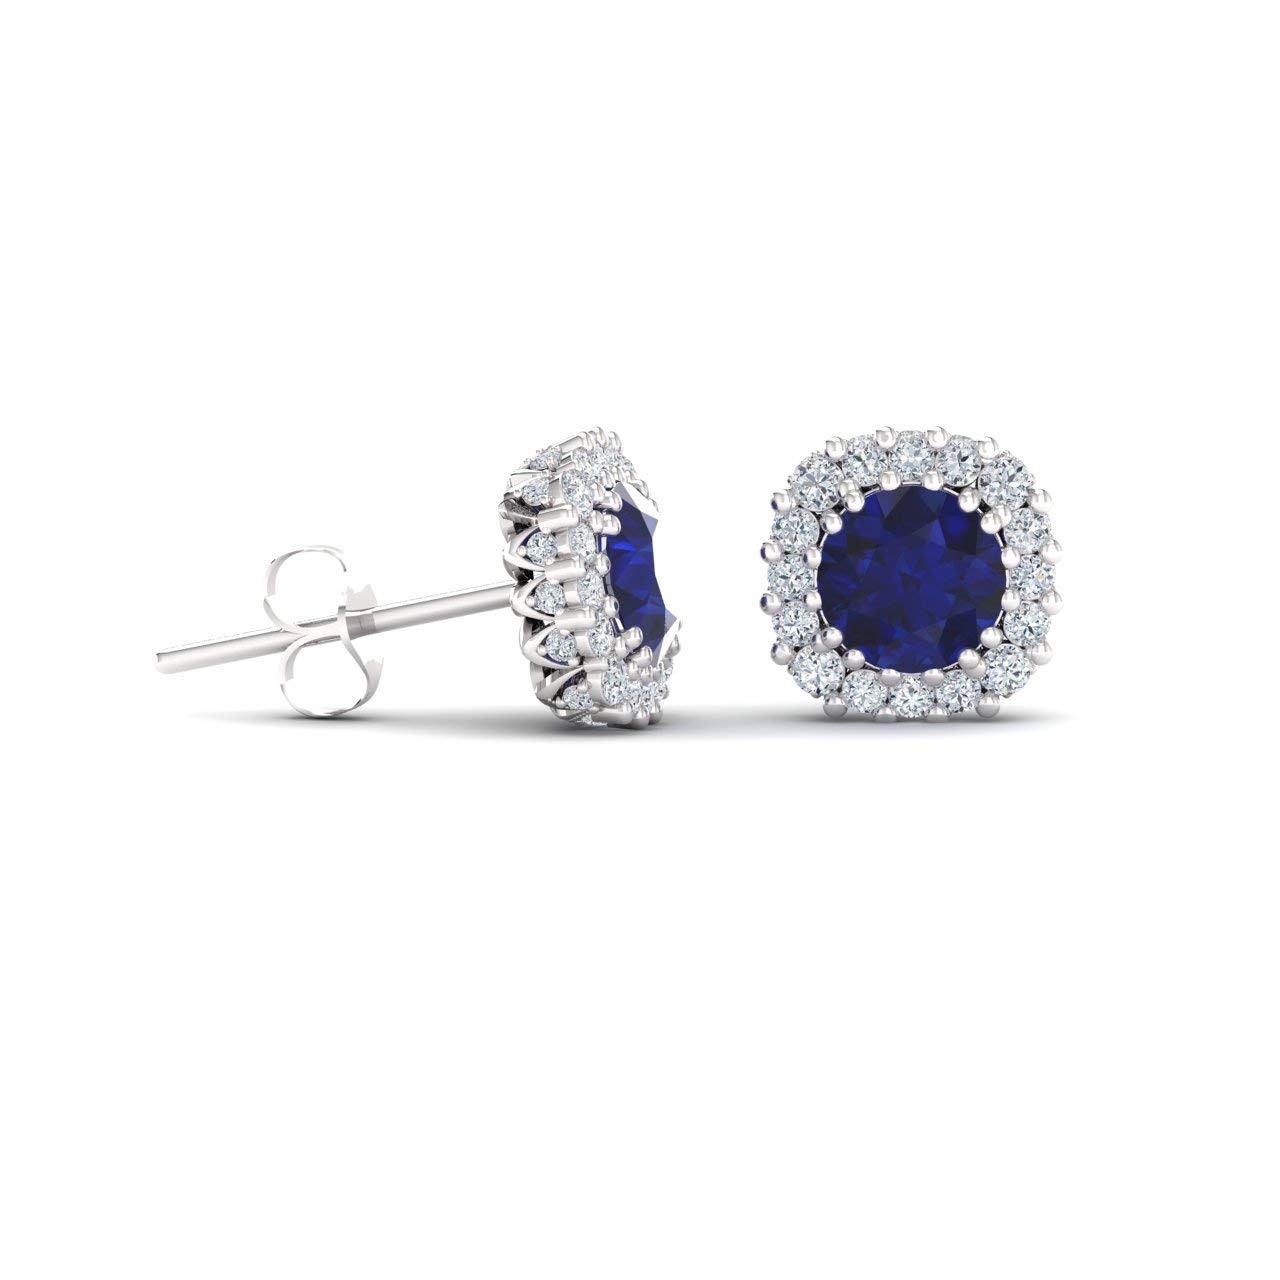 Diamondere Natural and Certified Gemstone and Diamonds Halo Earrings in 14K White Gold | 1.34 Carat Earrings for Women